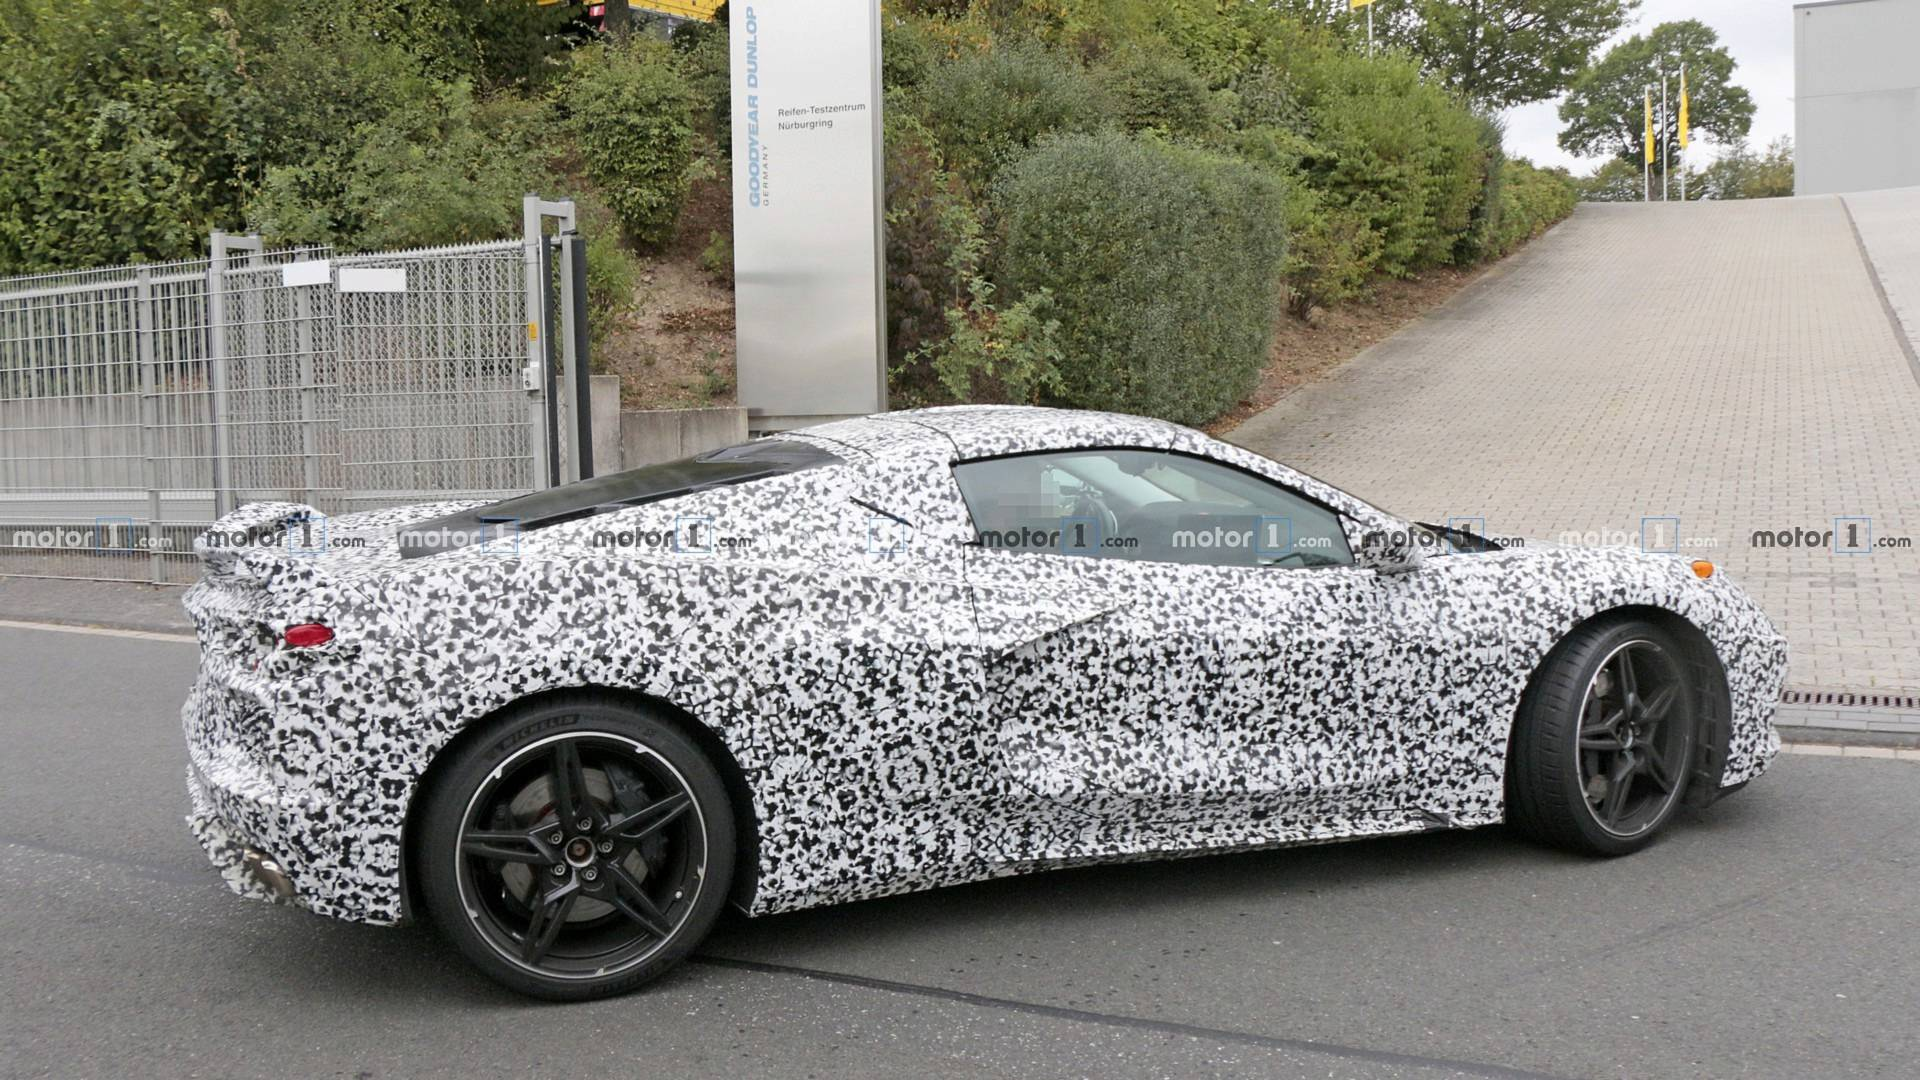 2019 - [Chevrolet] Corvette C8 Stingray - Page 2 Mid-engined-chevy-corvette-spy-photo